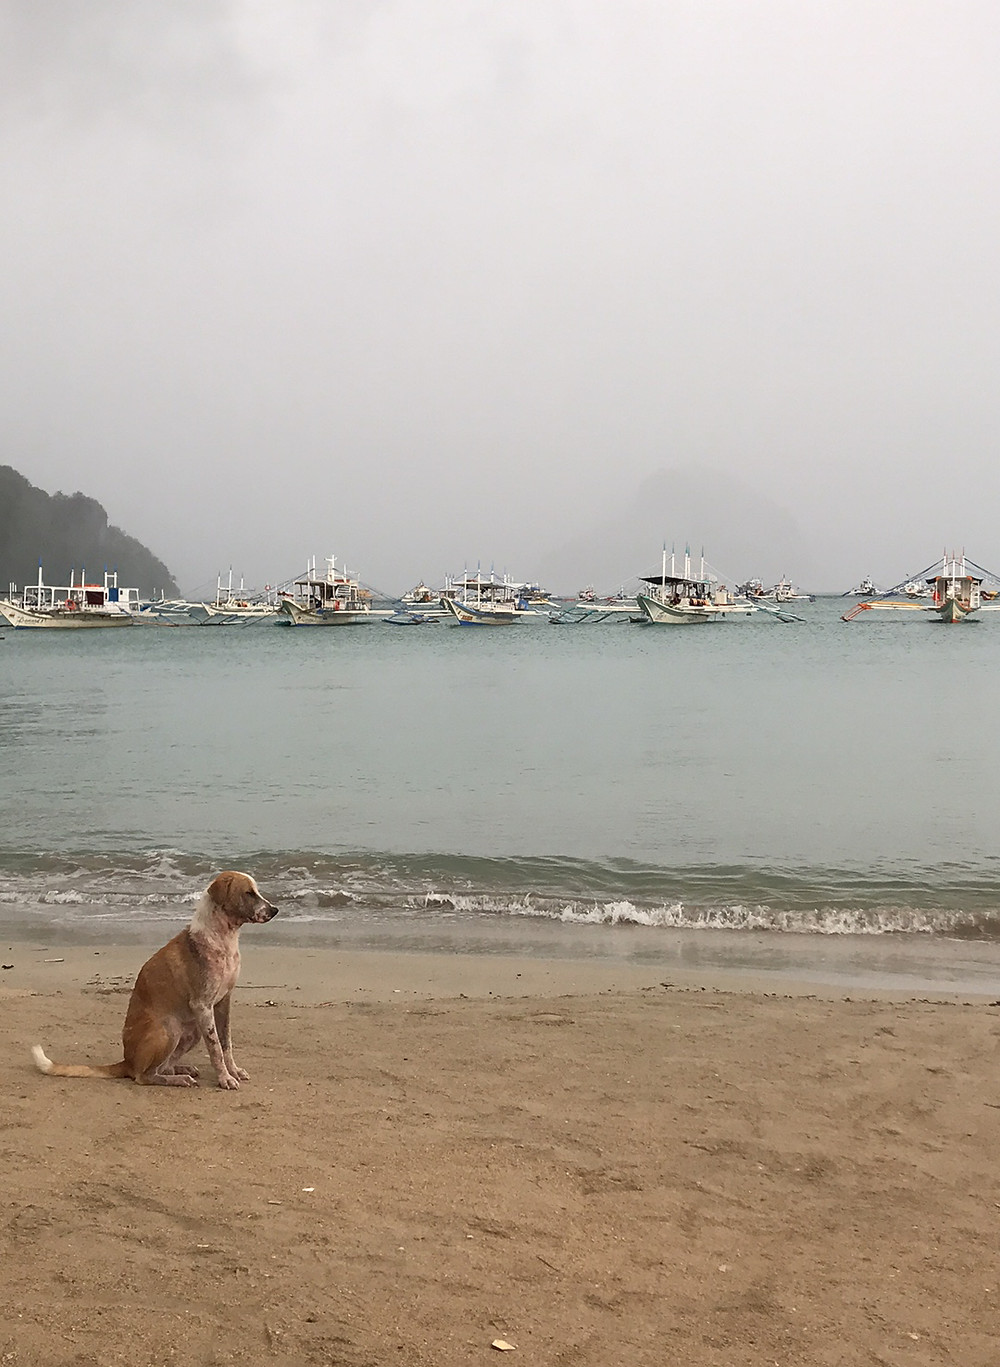 Baltic the dog not too happy with the current weather in El Nido. No dive for him too!